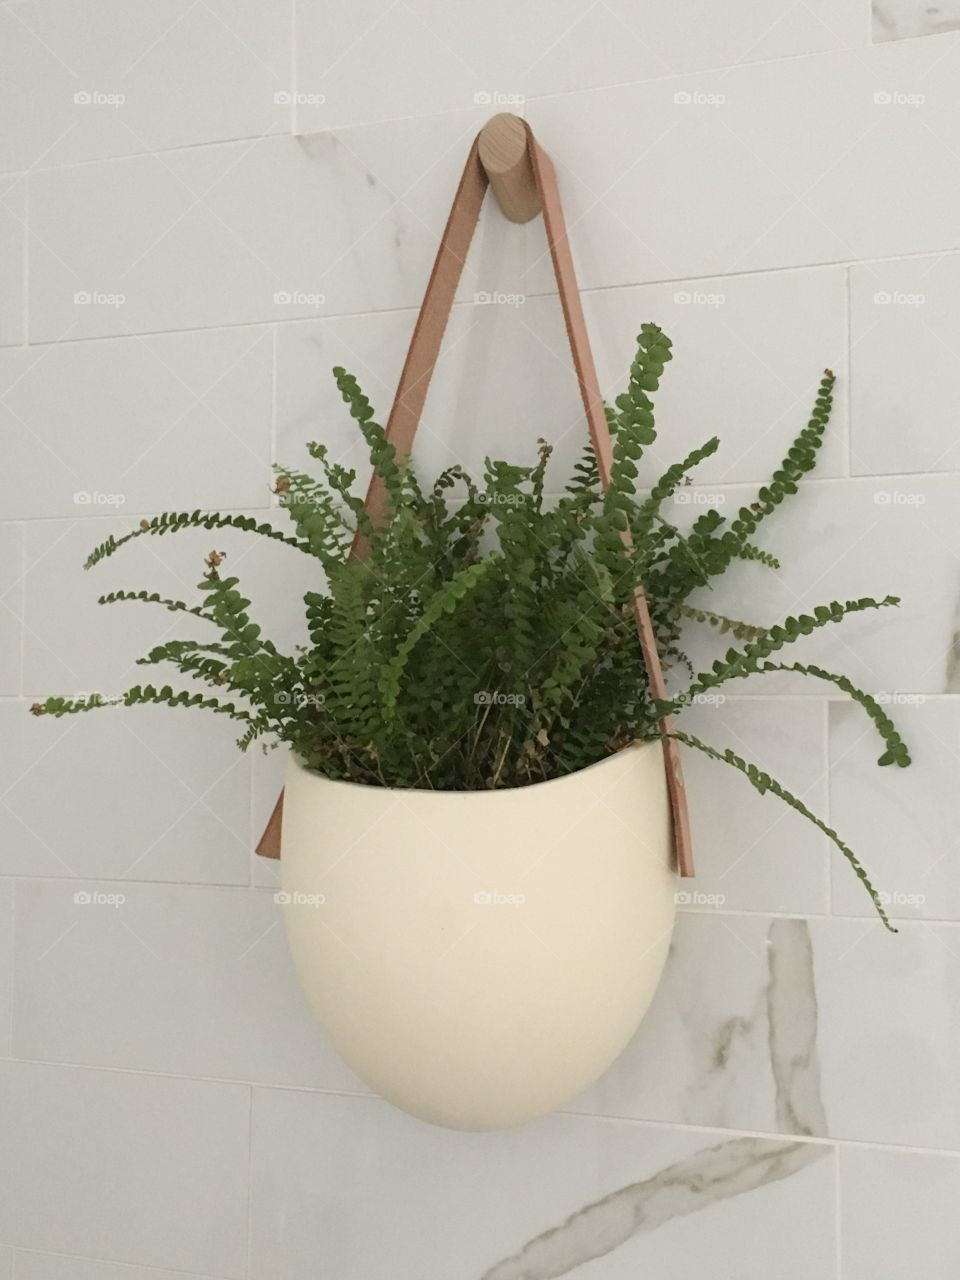 Potted plant hanging on wall